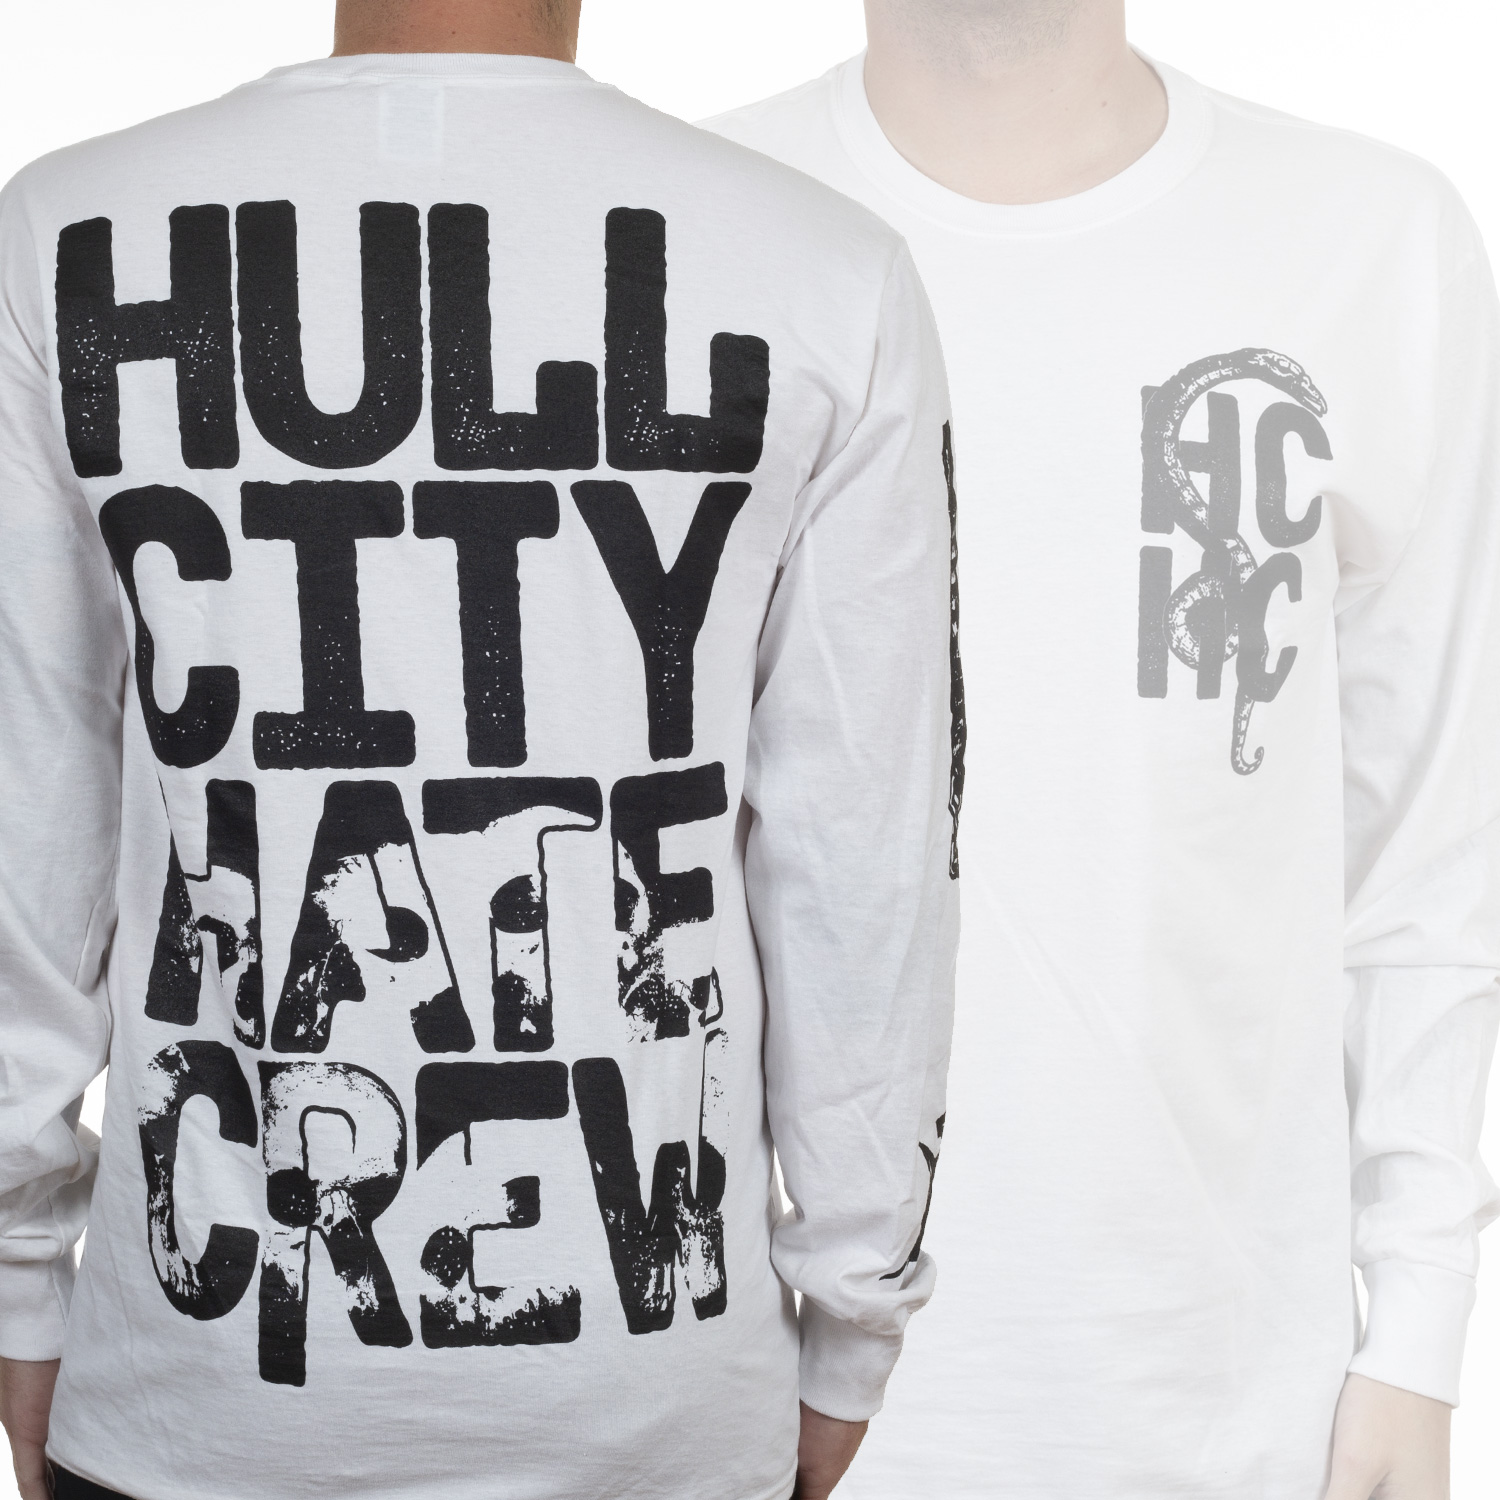 Hull City Hate Crew